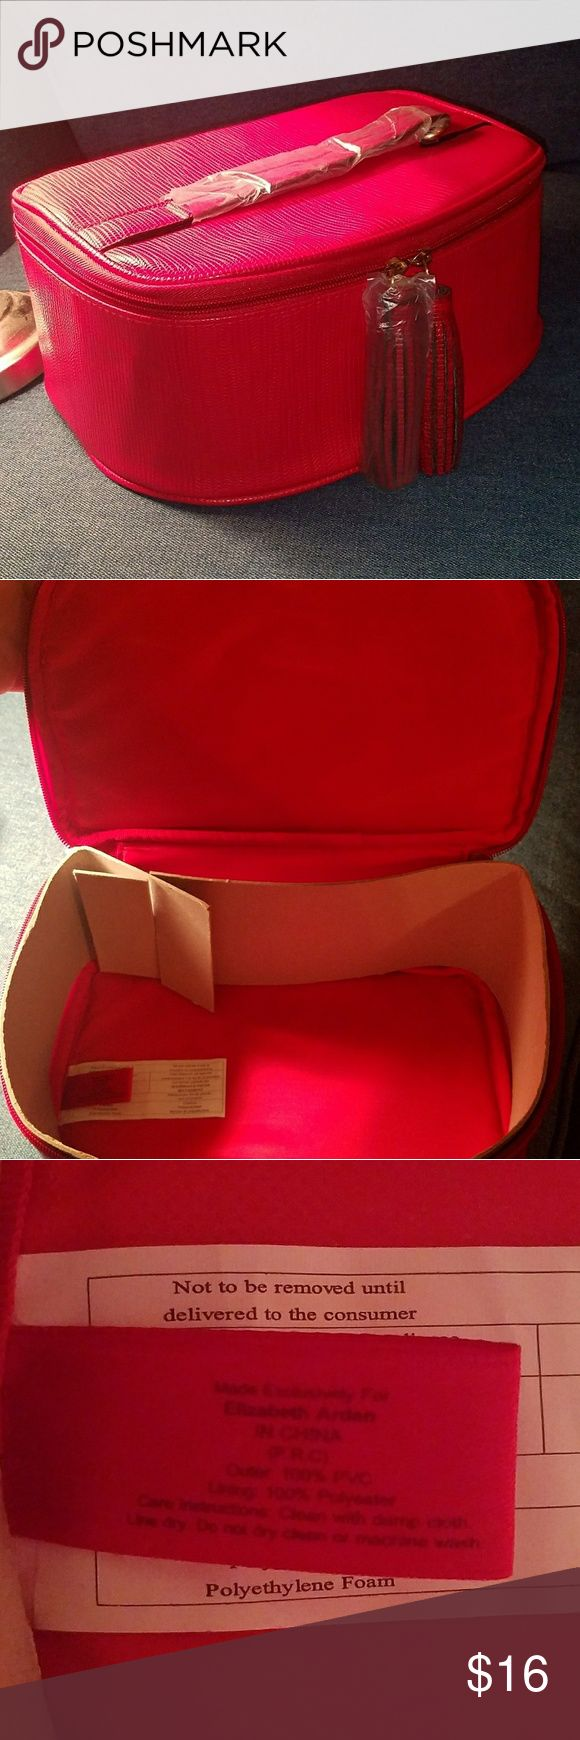 NWOT Elizabeth Arden Red Large Makeup Case Beautiful sassy red case by Elizabeth Arden. Very roomy, perfect to take on a trip to store your beauty essentials. Two zippers with red fringe details on both! Very clean inside and out. Also has a handle on top to make it easy to carry! Elizabeth Arden Makeup